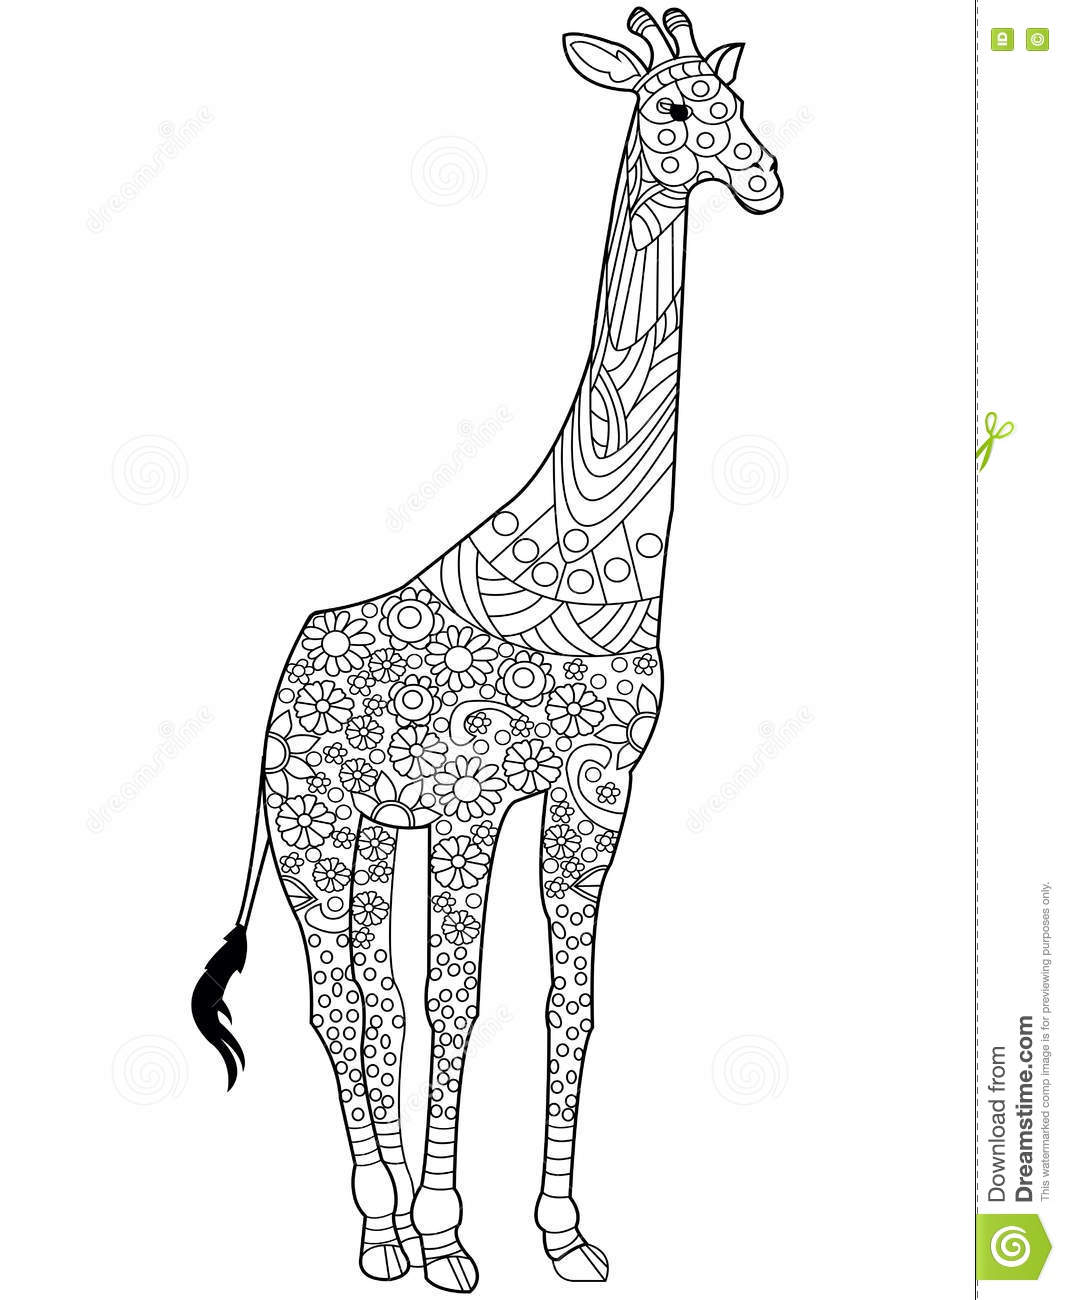 Giraffe Coloring Book Vector For Adults Stock Vector